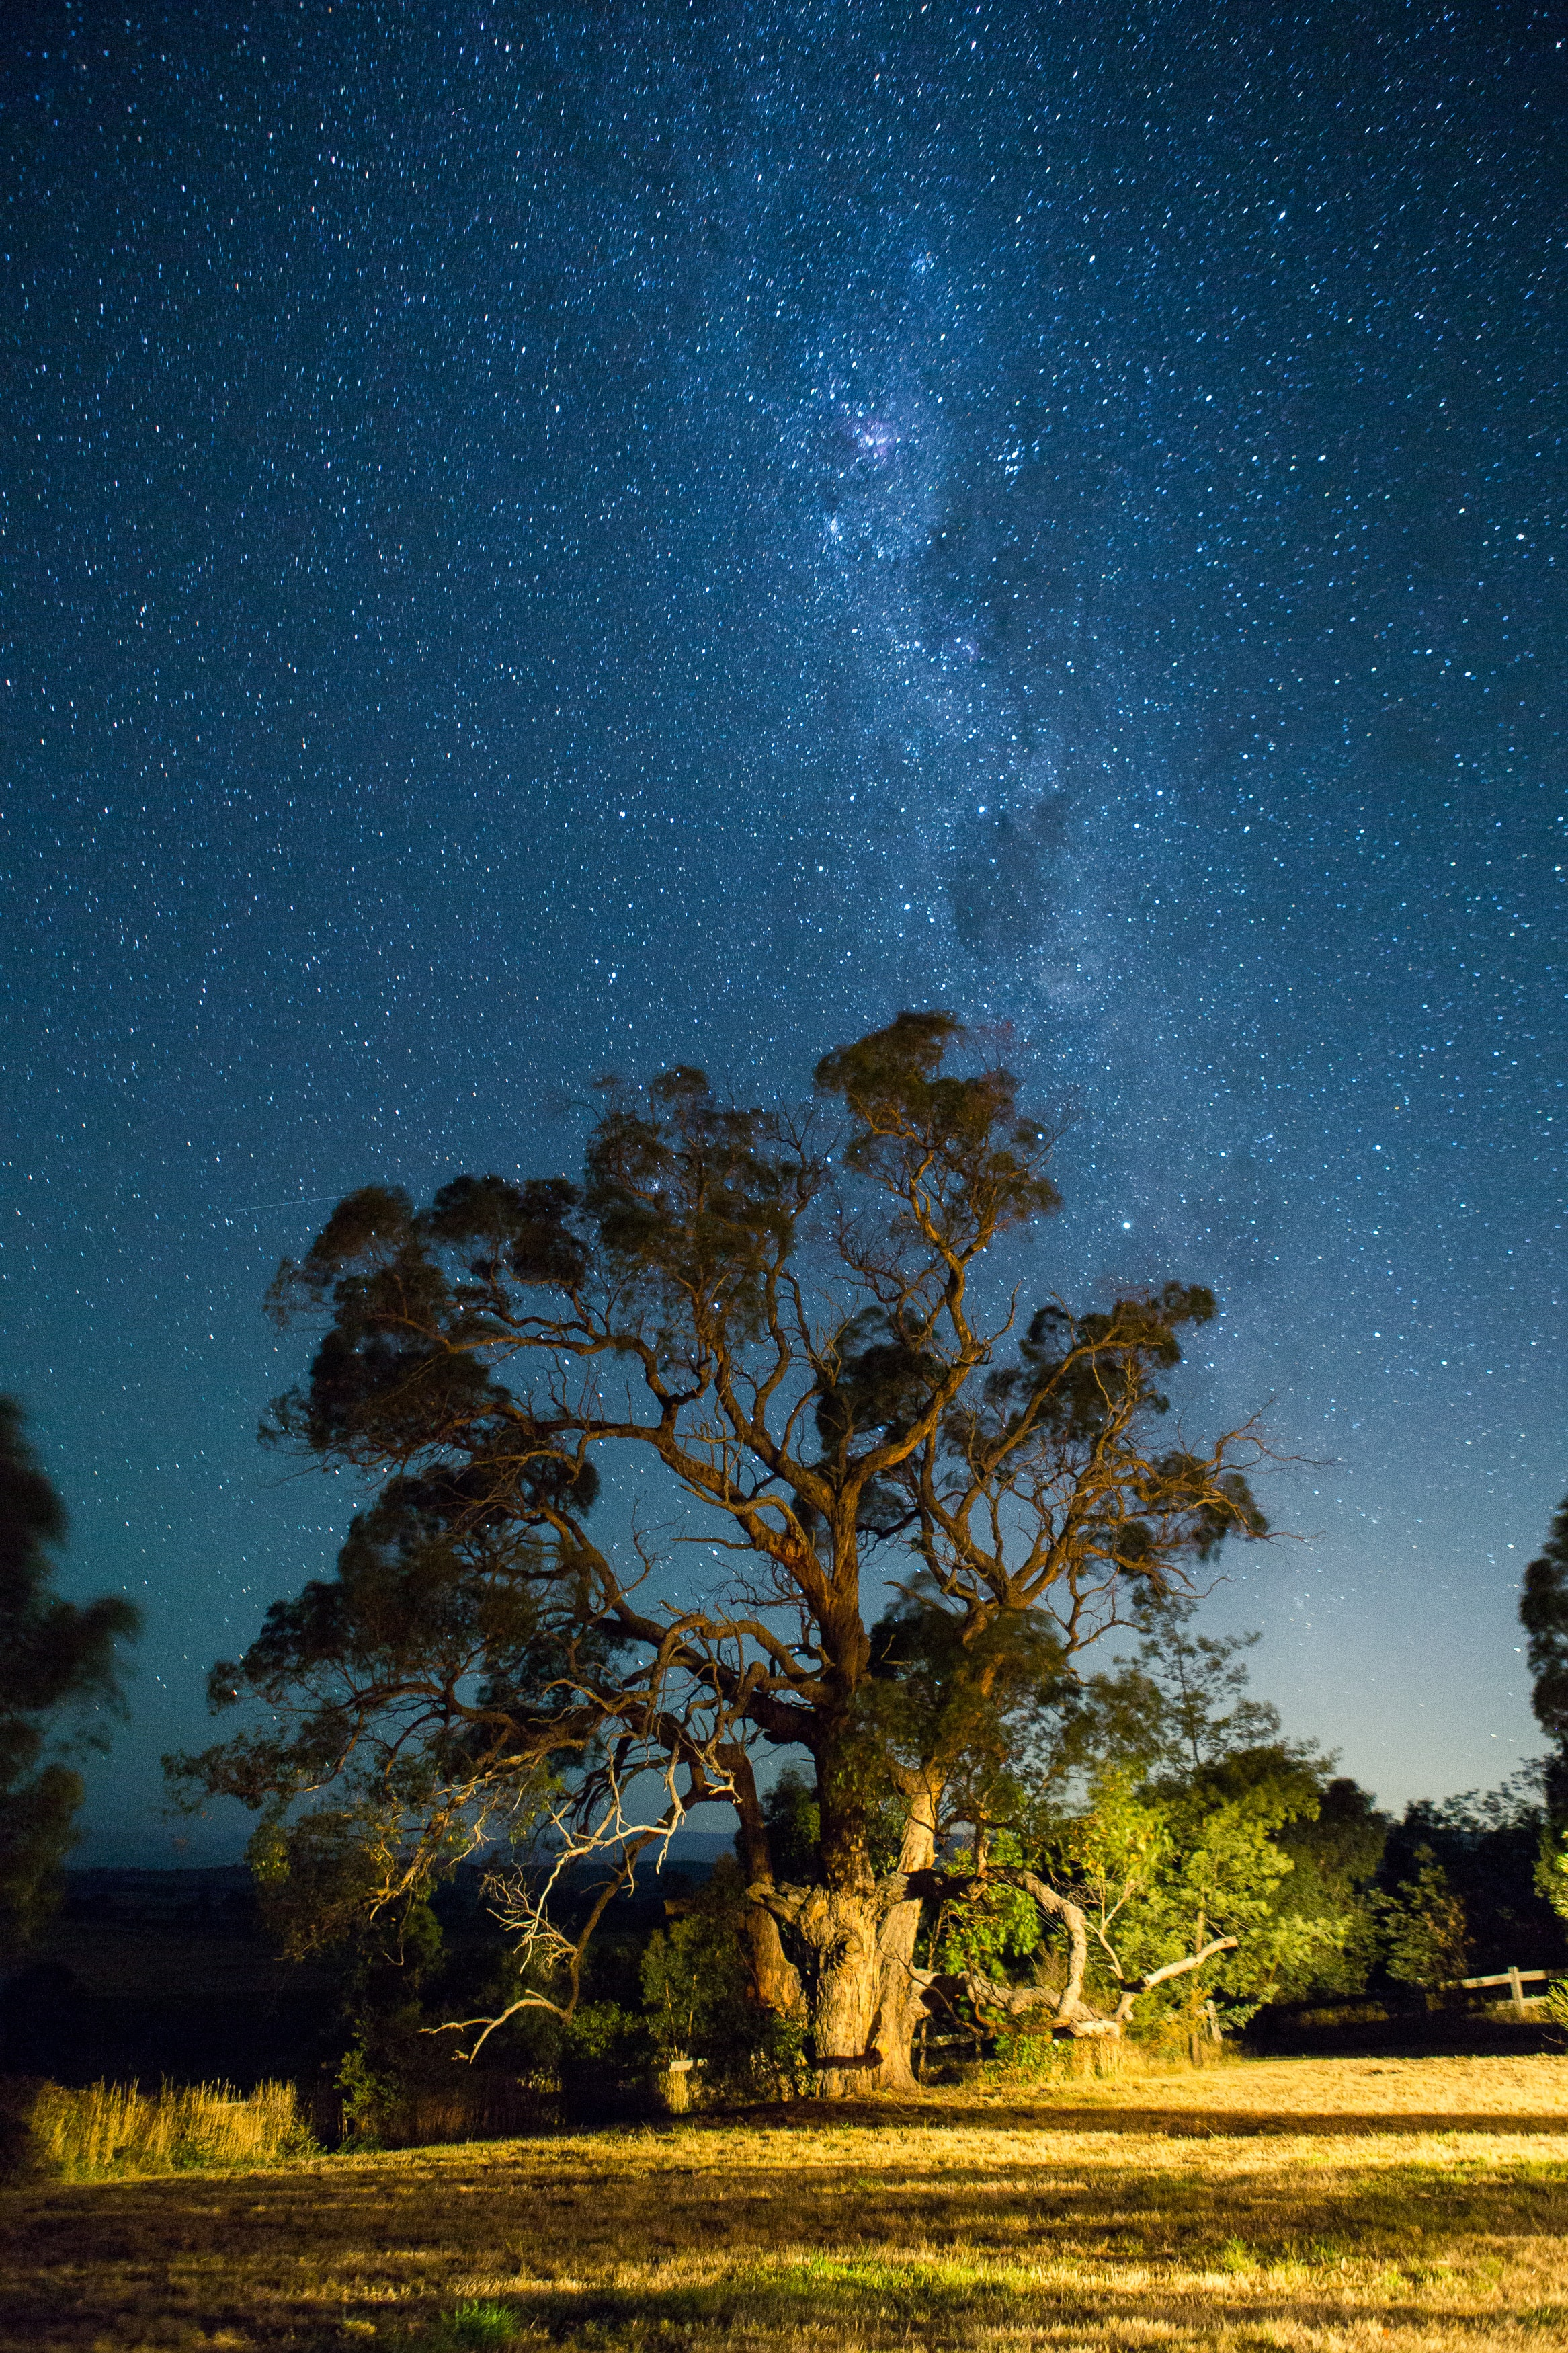 green leafed tree under starry skies